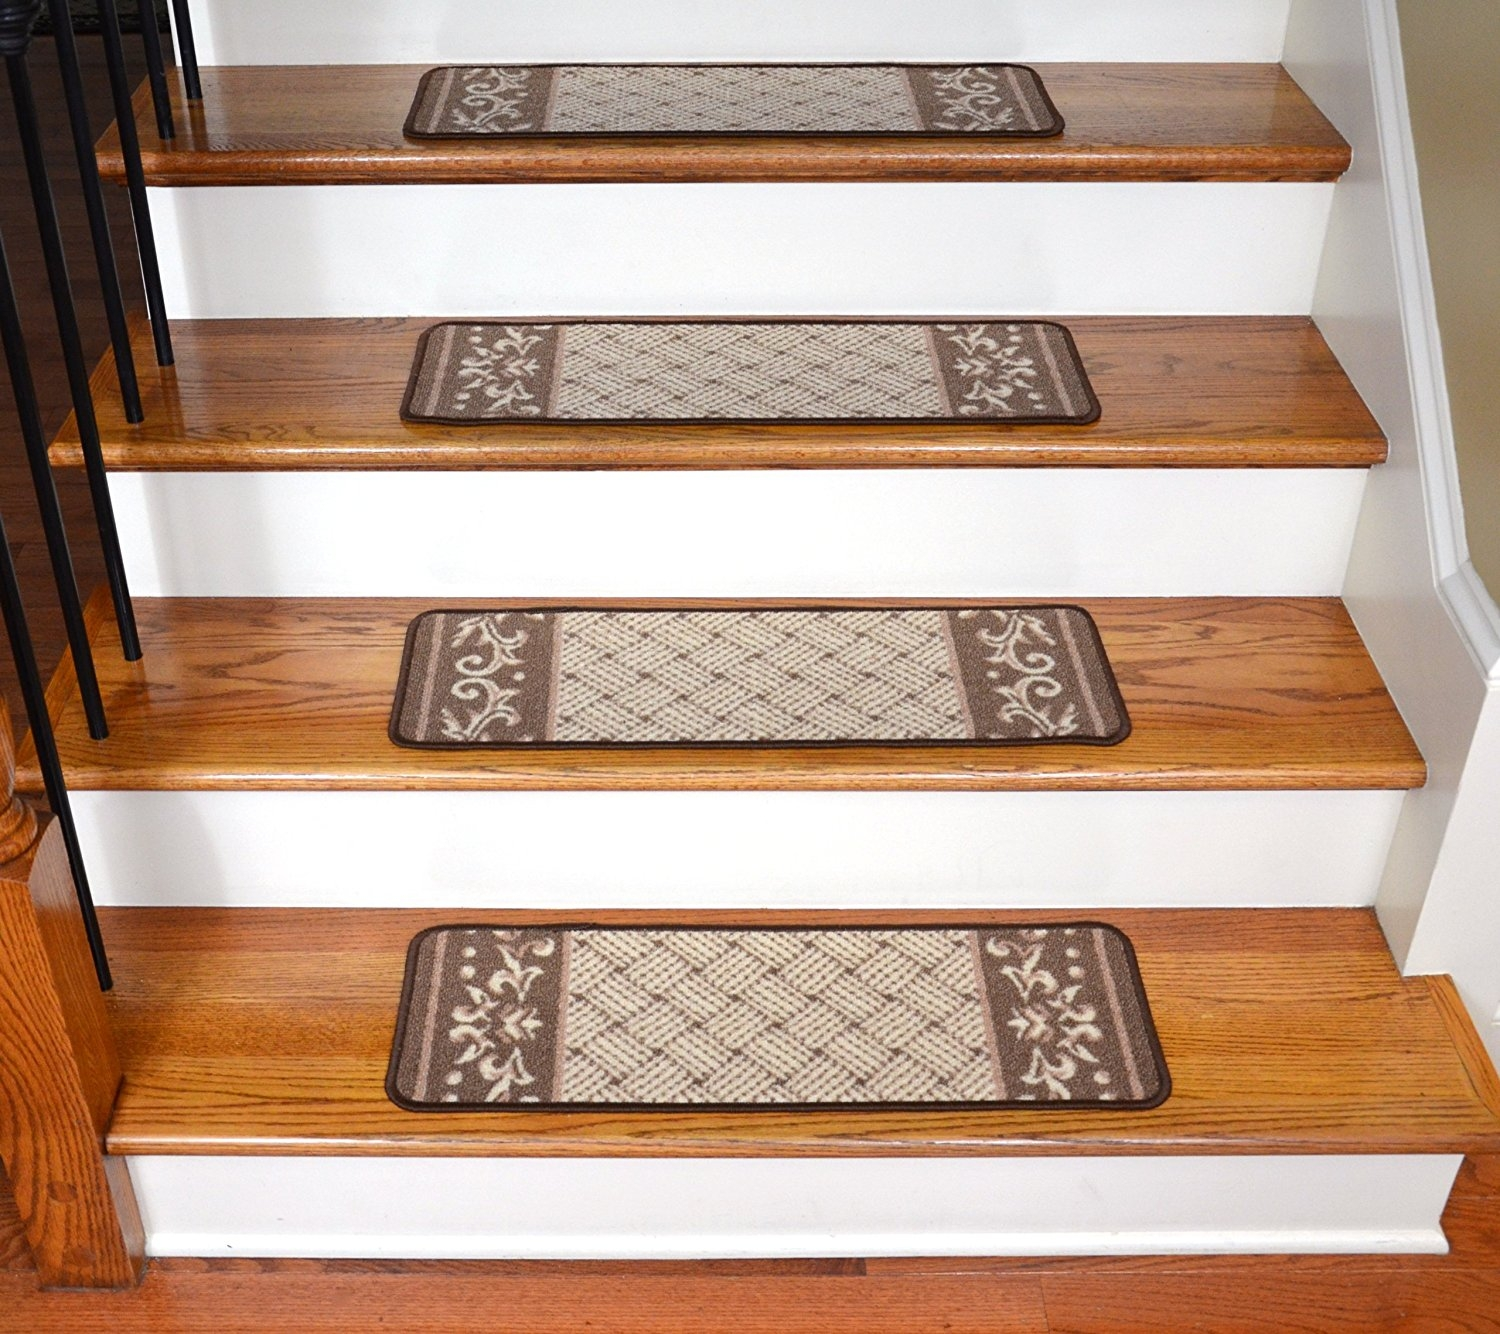 Amazon Carpet Stair Treads Caramel Scroll Border Regarding Oval Stair Tread Rugs (Image 2 of 15)